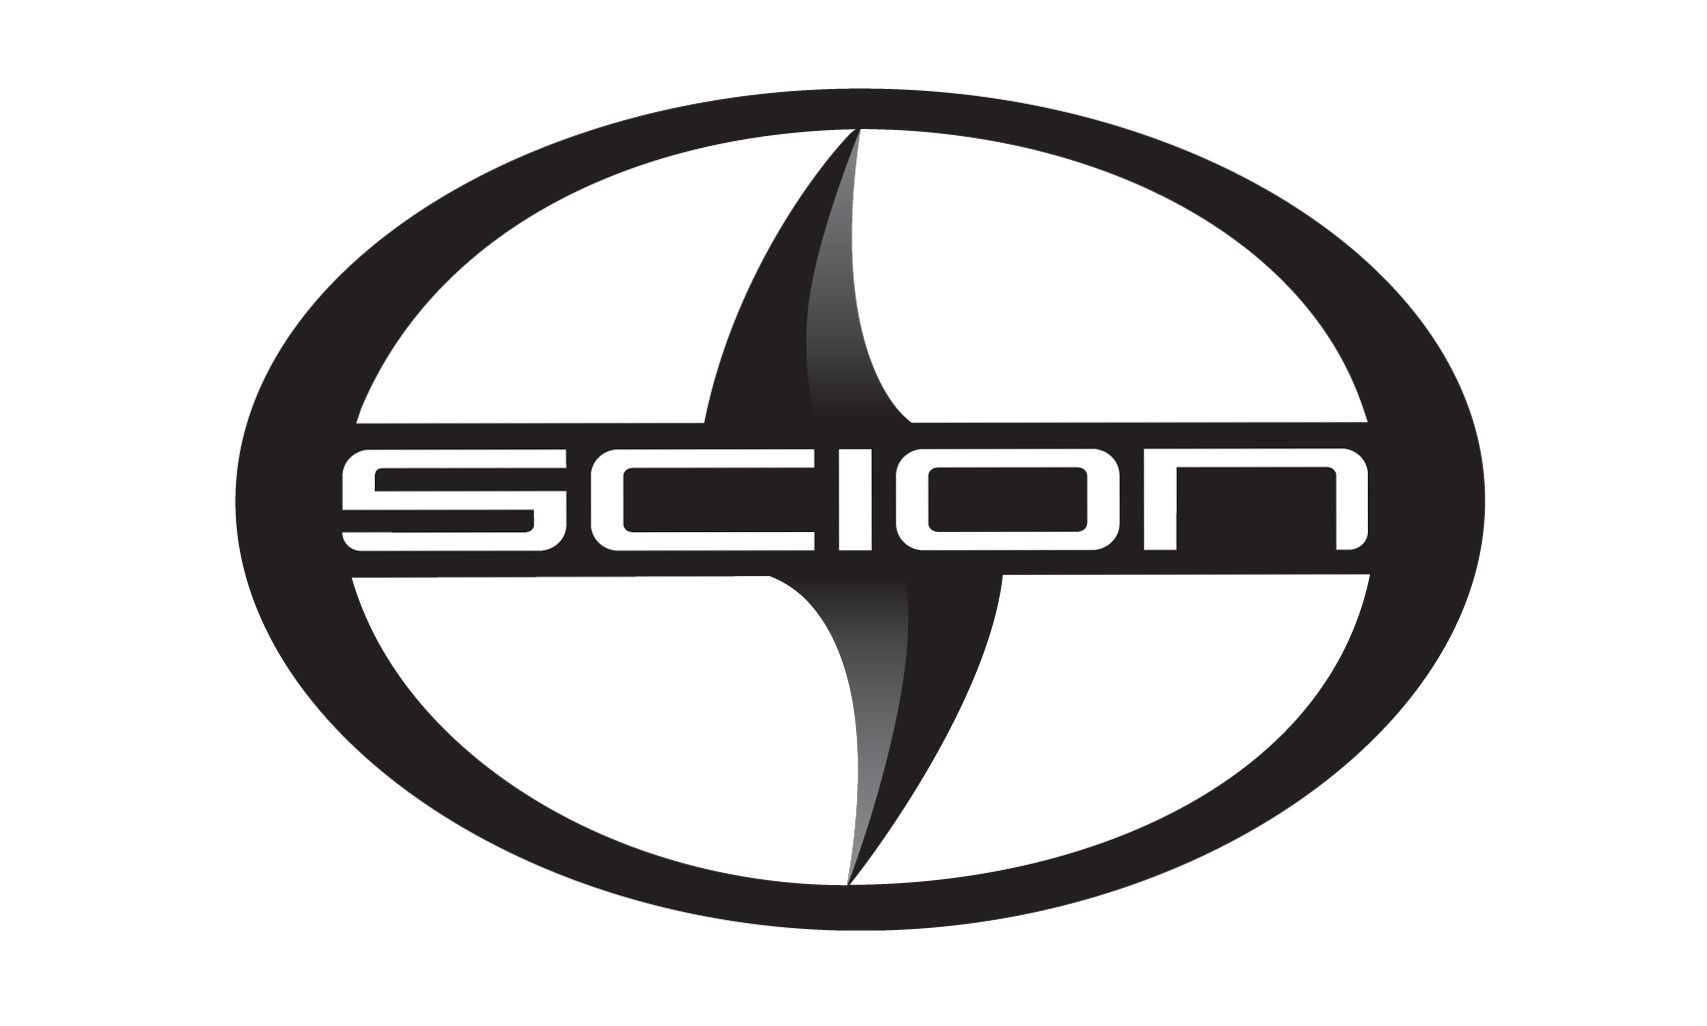 Scion Logo - Scion Logo Meaning and History, latest models | World Cars Brands